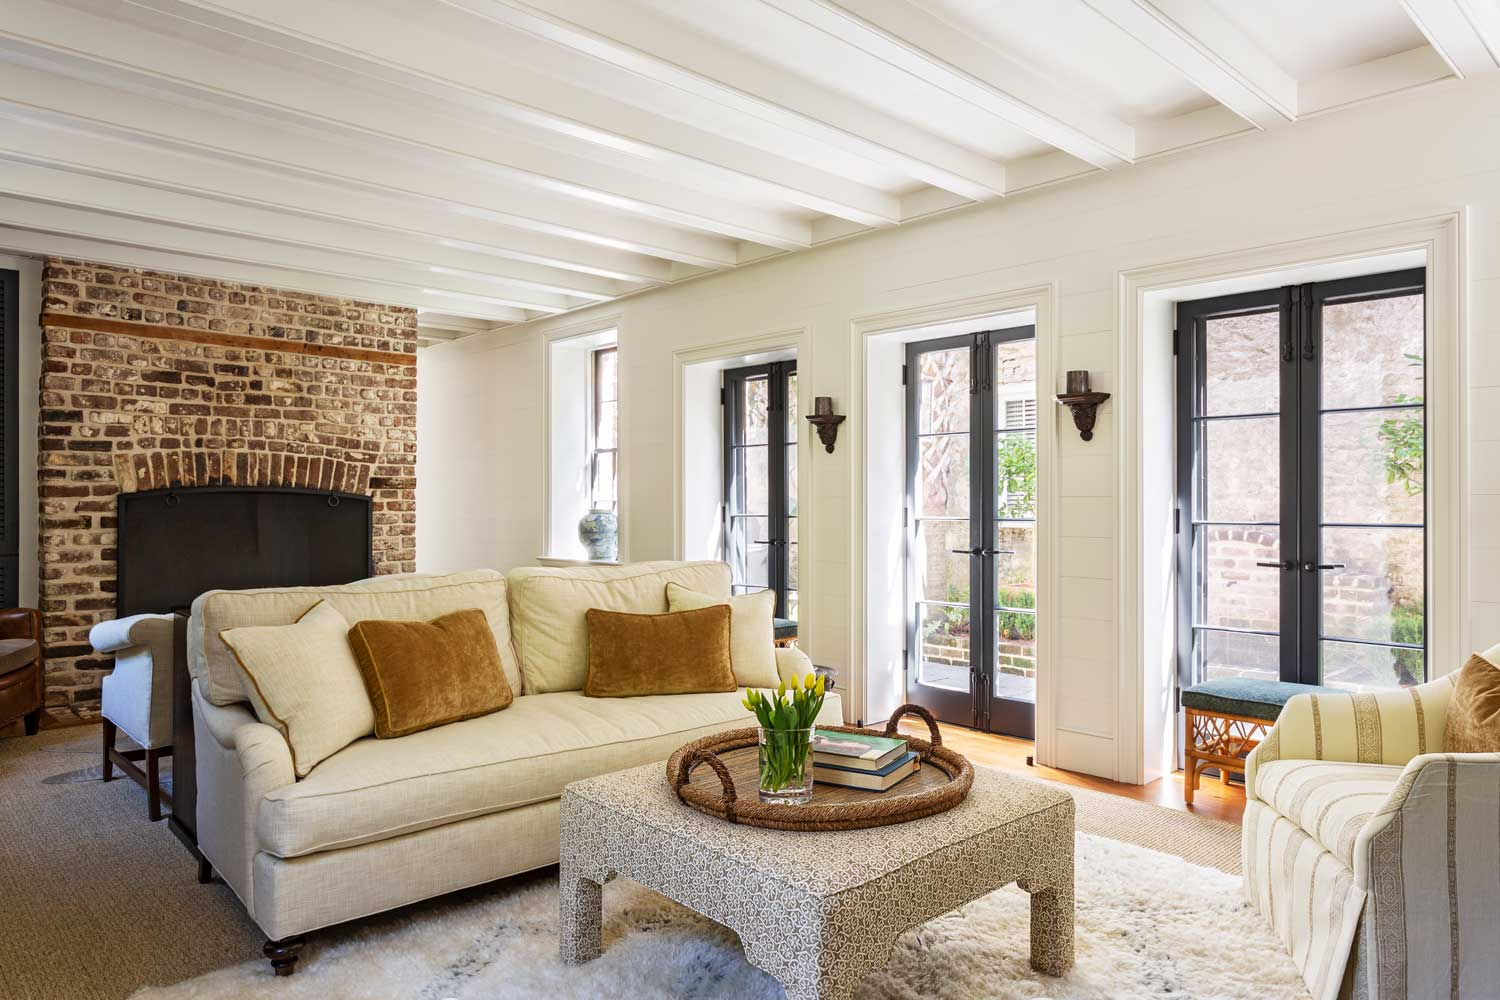 restored-living-room-open-beams.jpg